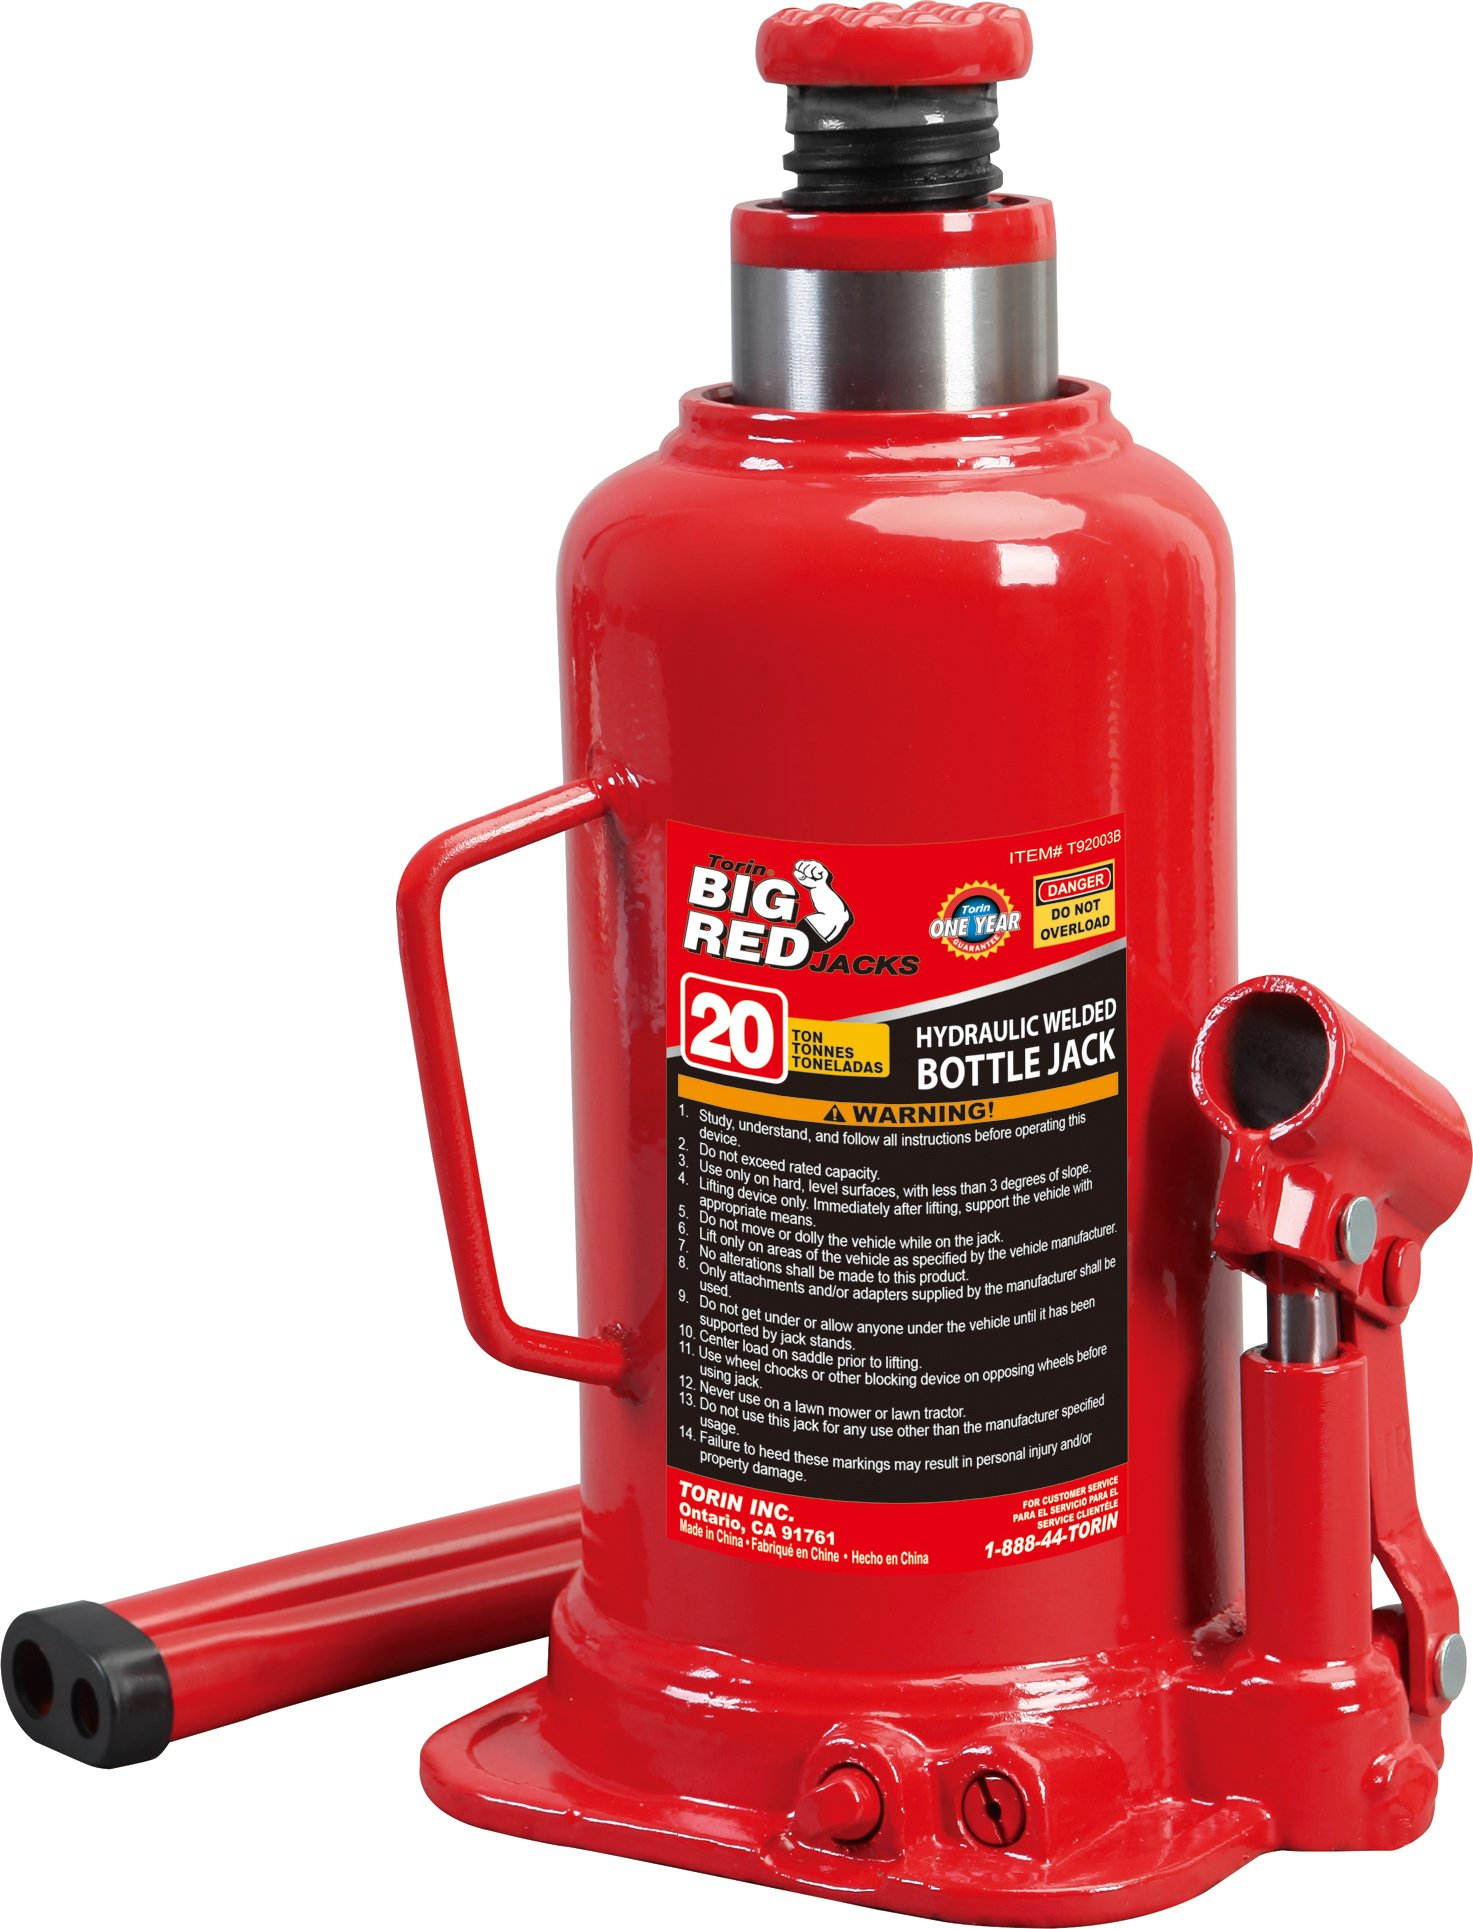 Torin Big Red Hydraulic Bottle Jack, 20 Ton Capacity by Torin